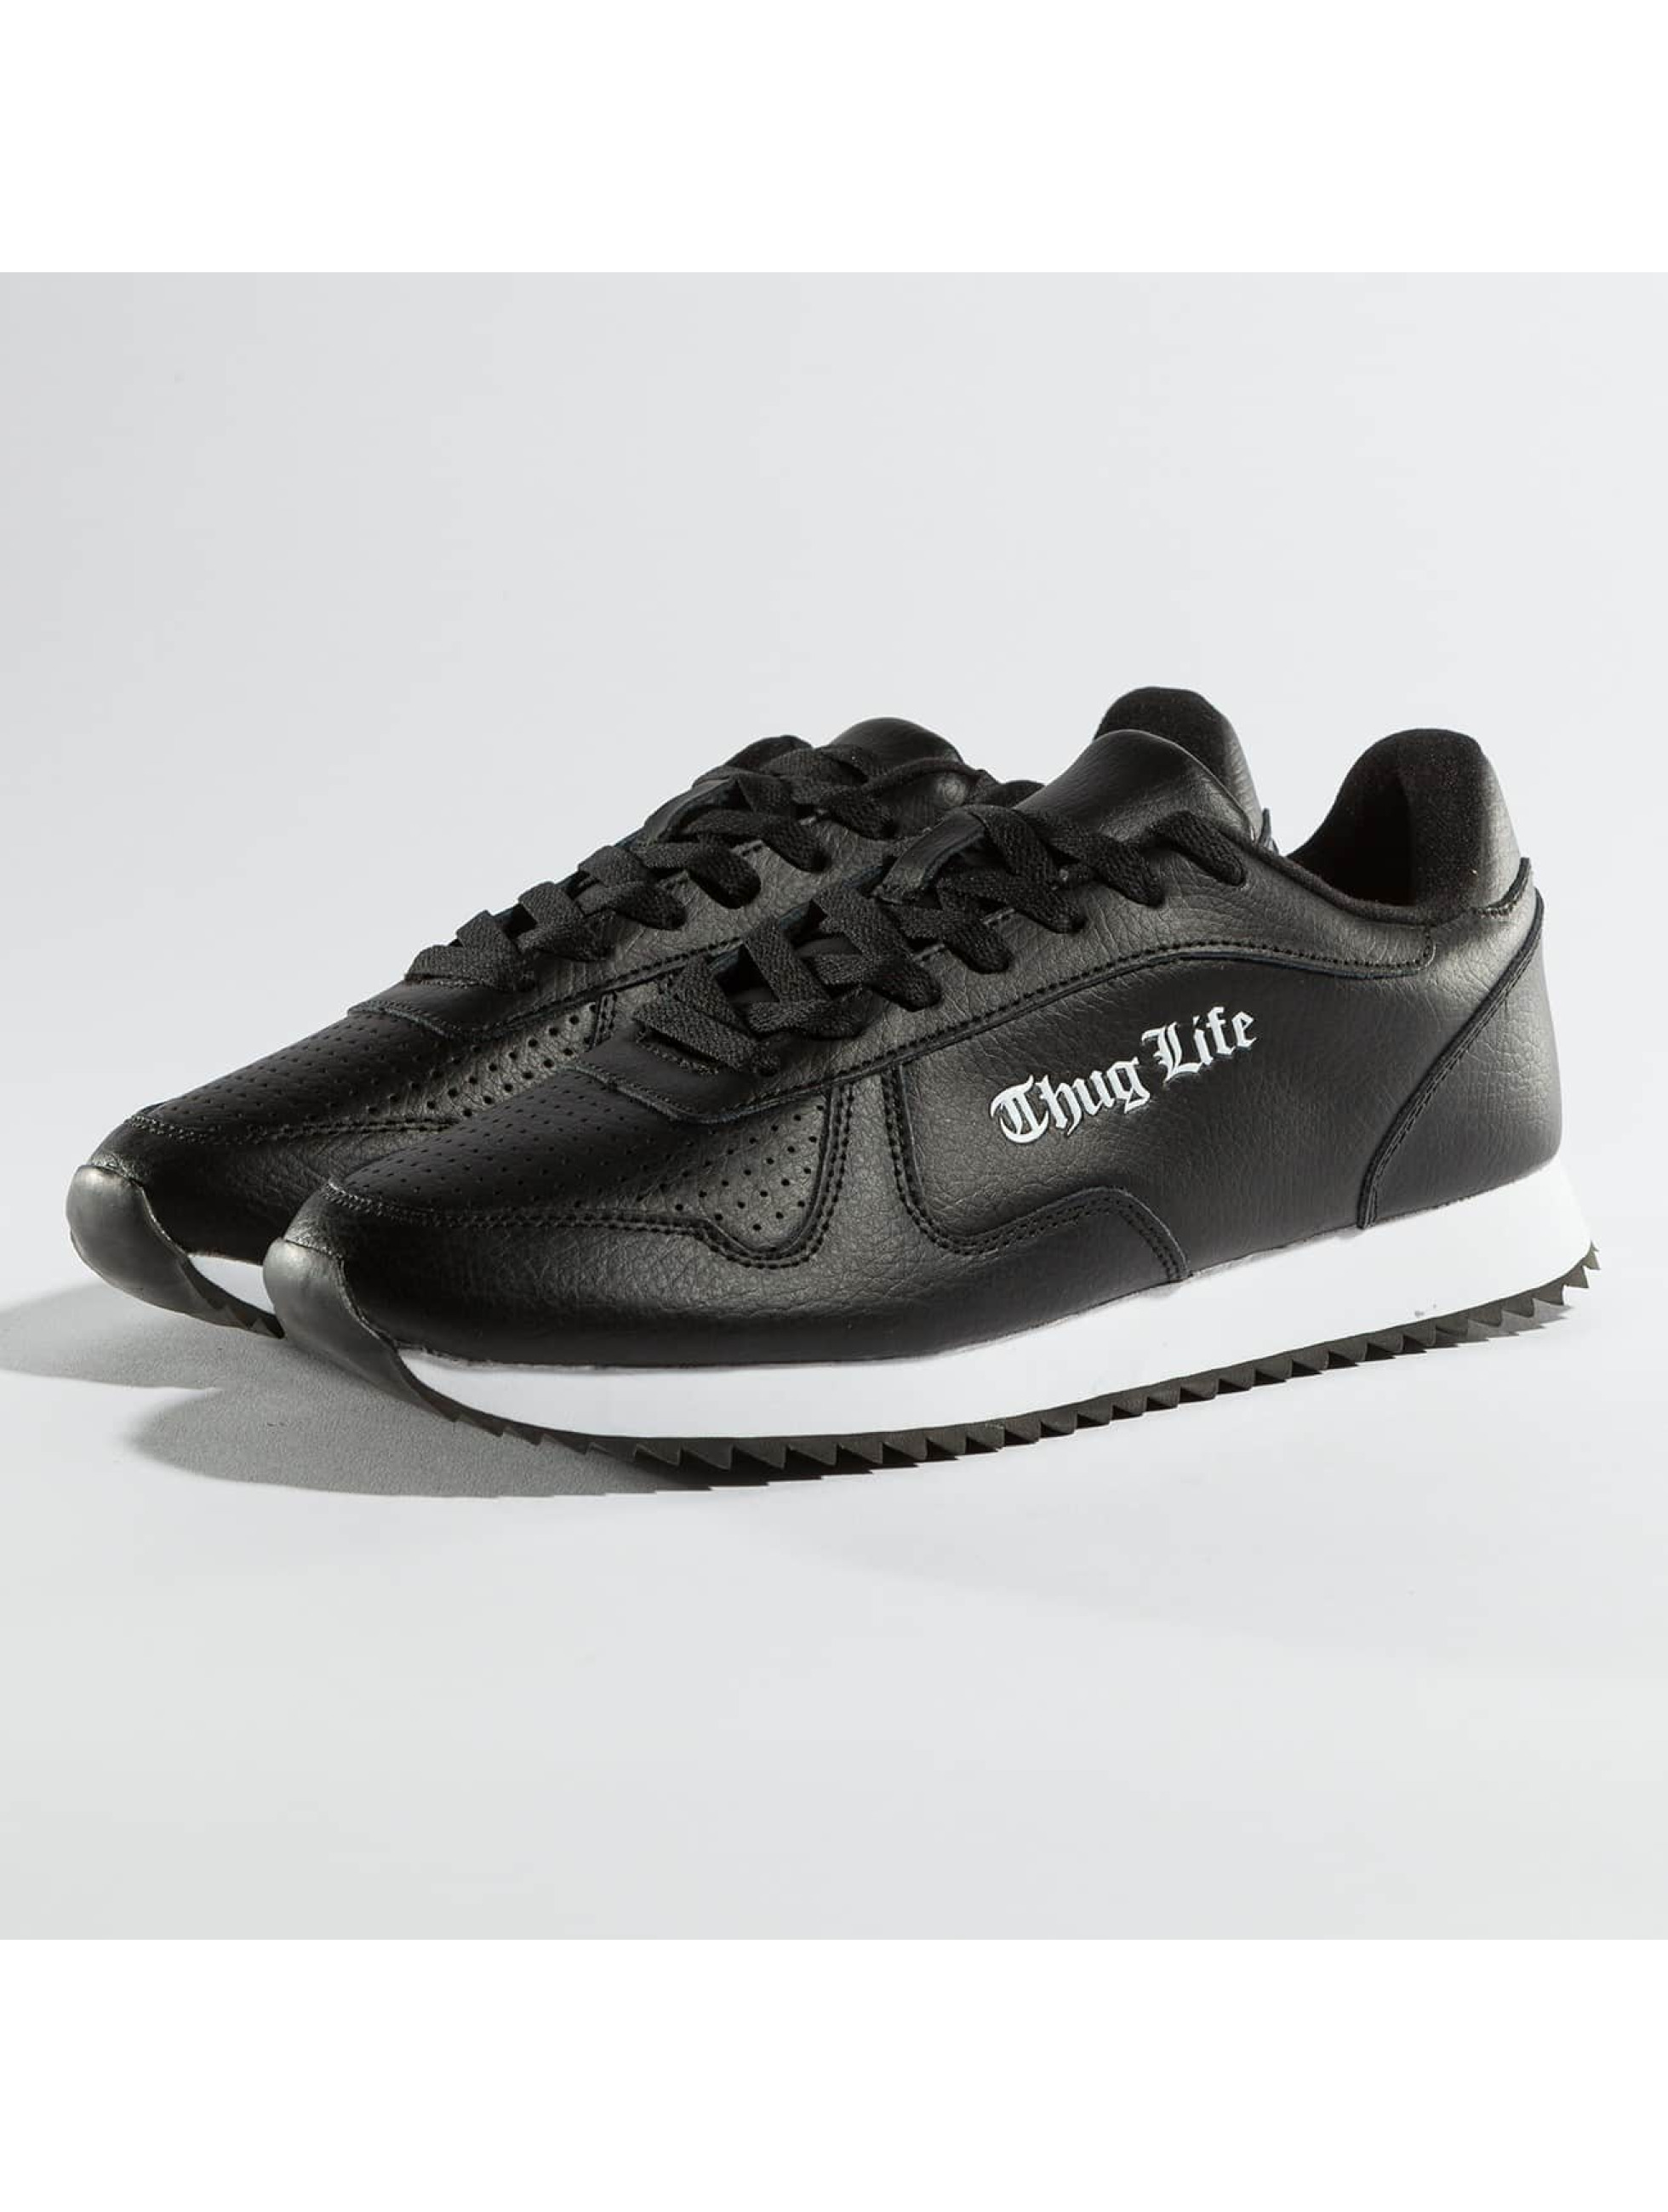 Thug Life 40 Chaussures Pour Hommes Qq0oBeWEdO